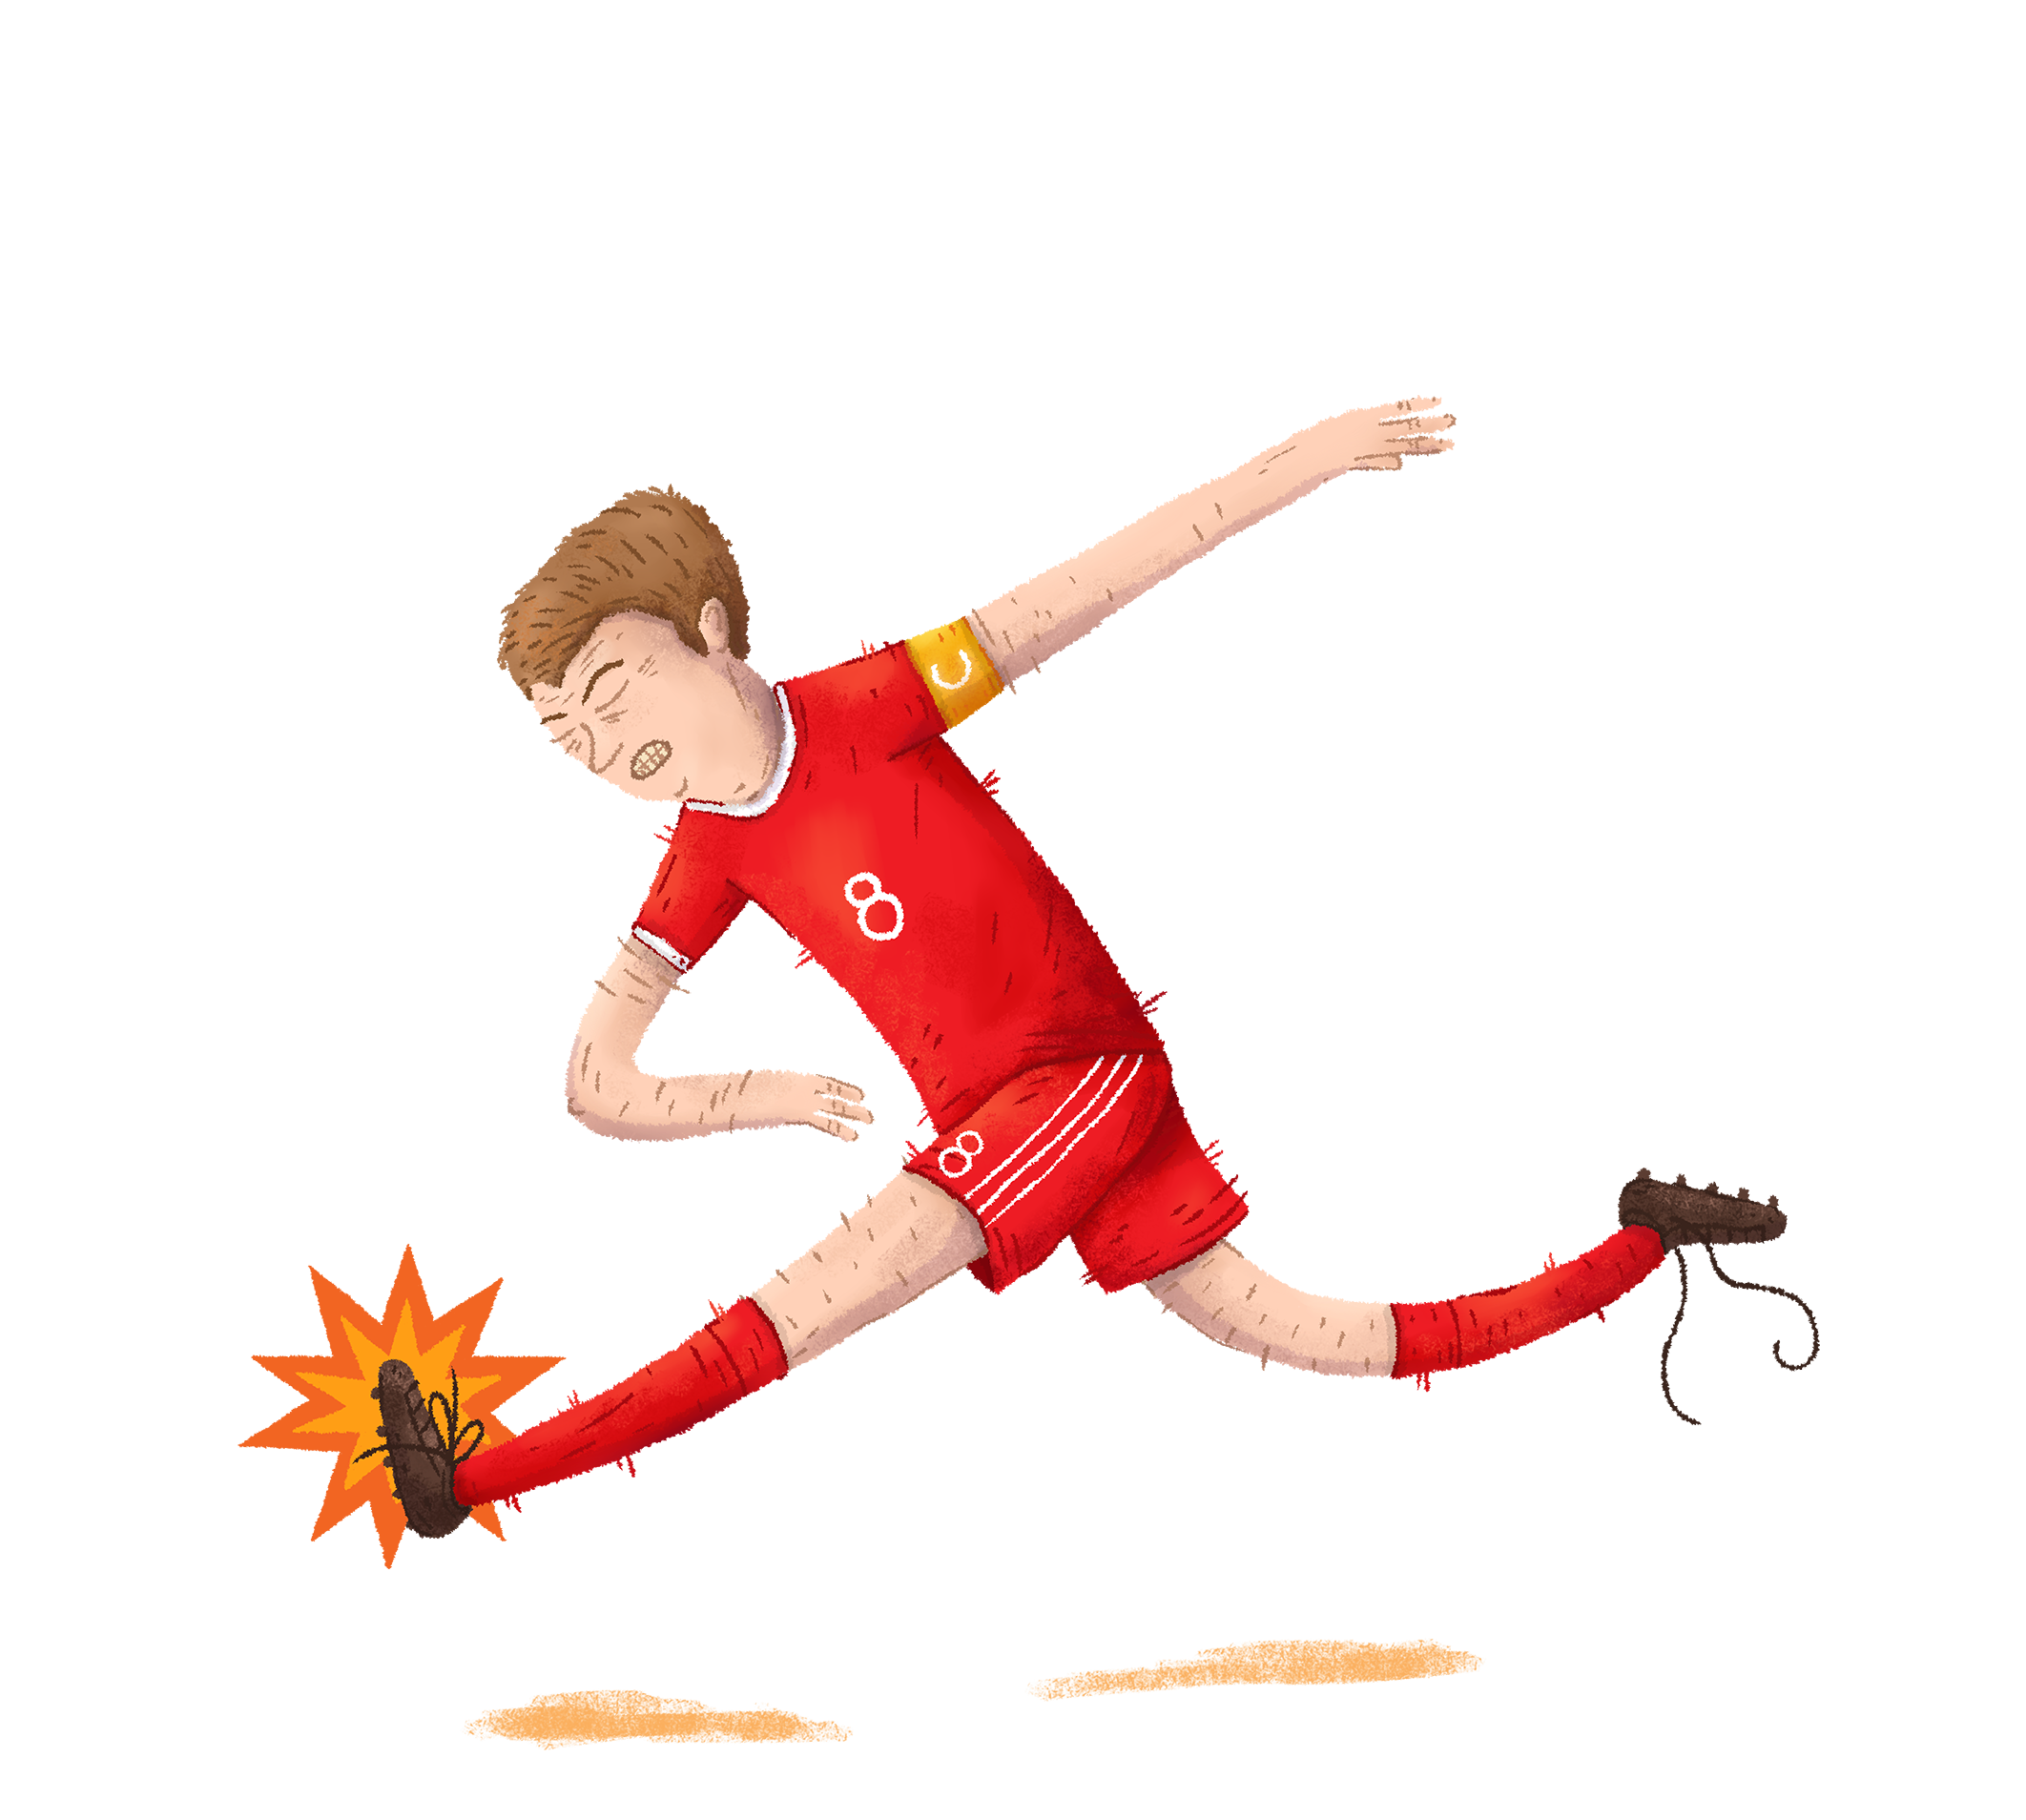 Gerrard, Liverpool #THEBIGFOOT #FOOT #FIFA #PES #PS4 #XBOX #JEUX #JEUXVIDEO #SOCCER #GERRARD #ANGLETERRE #ENGLAND #LIVERPOOL #REDS #STEEVIEG #DESSIN #ILLUSTRATION